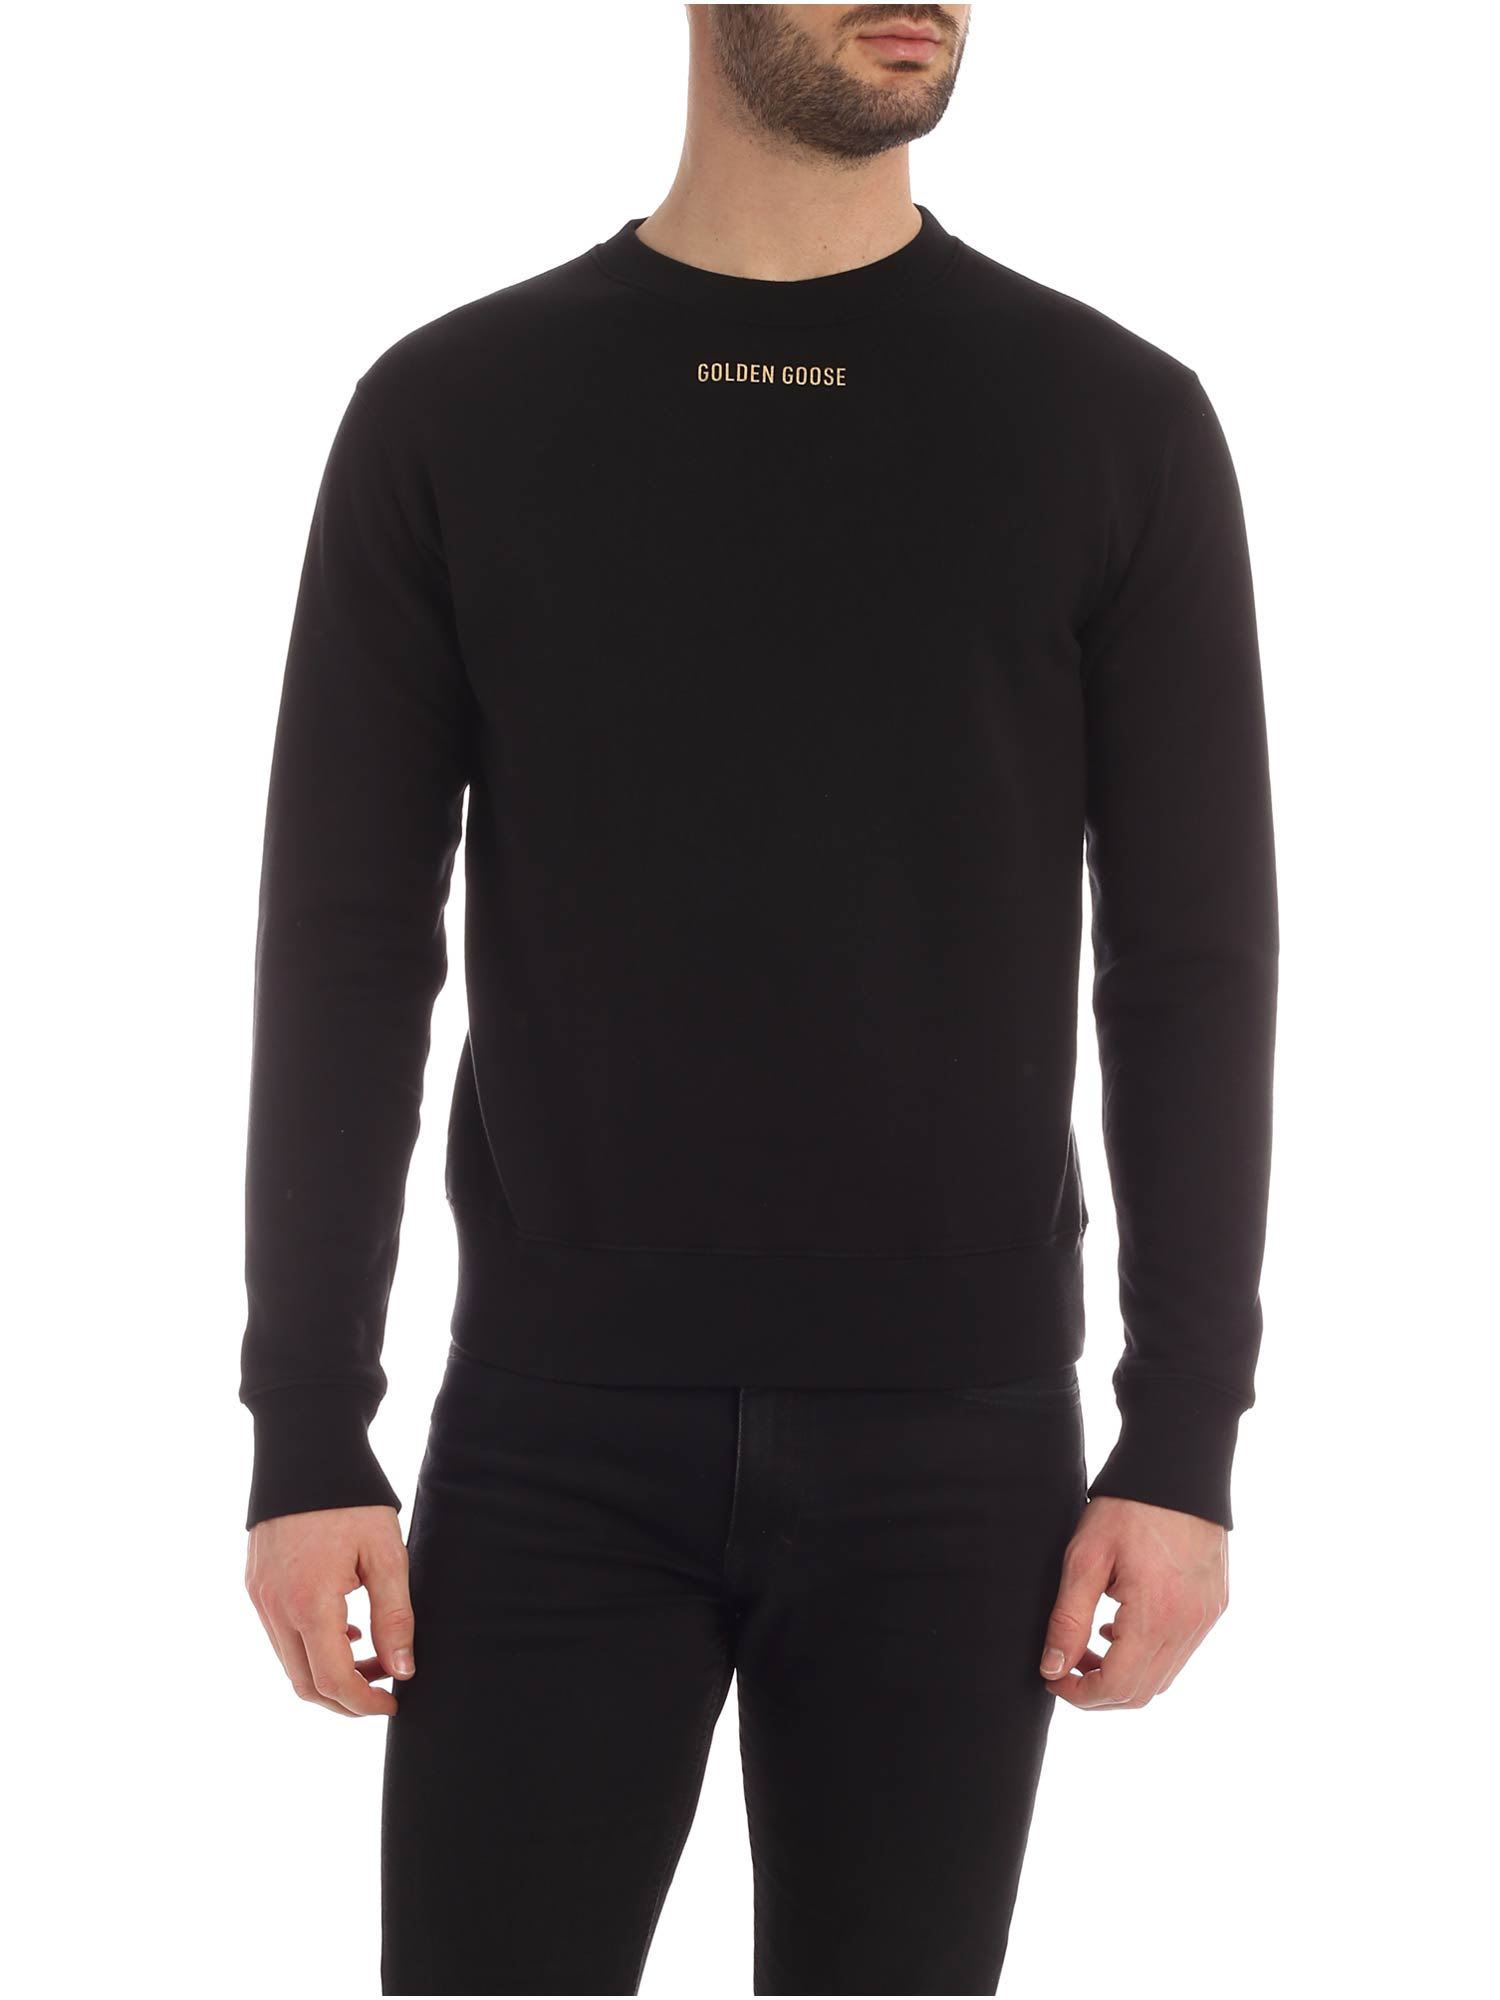 Sharon Sweatshirt from Golden Goose: Black Crewneck with frontal logo and gold print on back. -fit the true size -composition: 100% cotton -made in italy